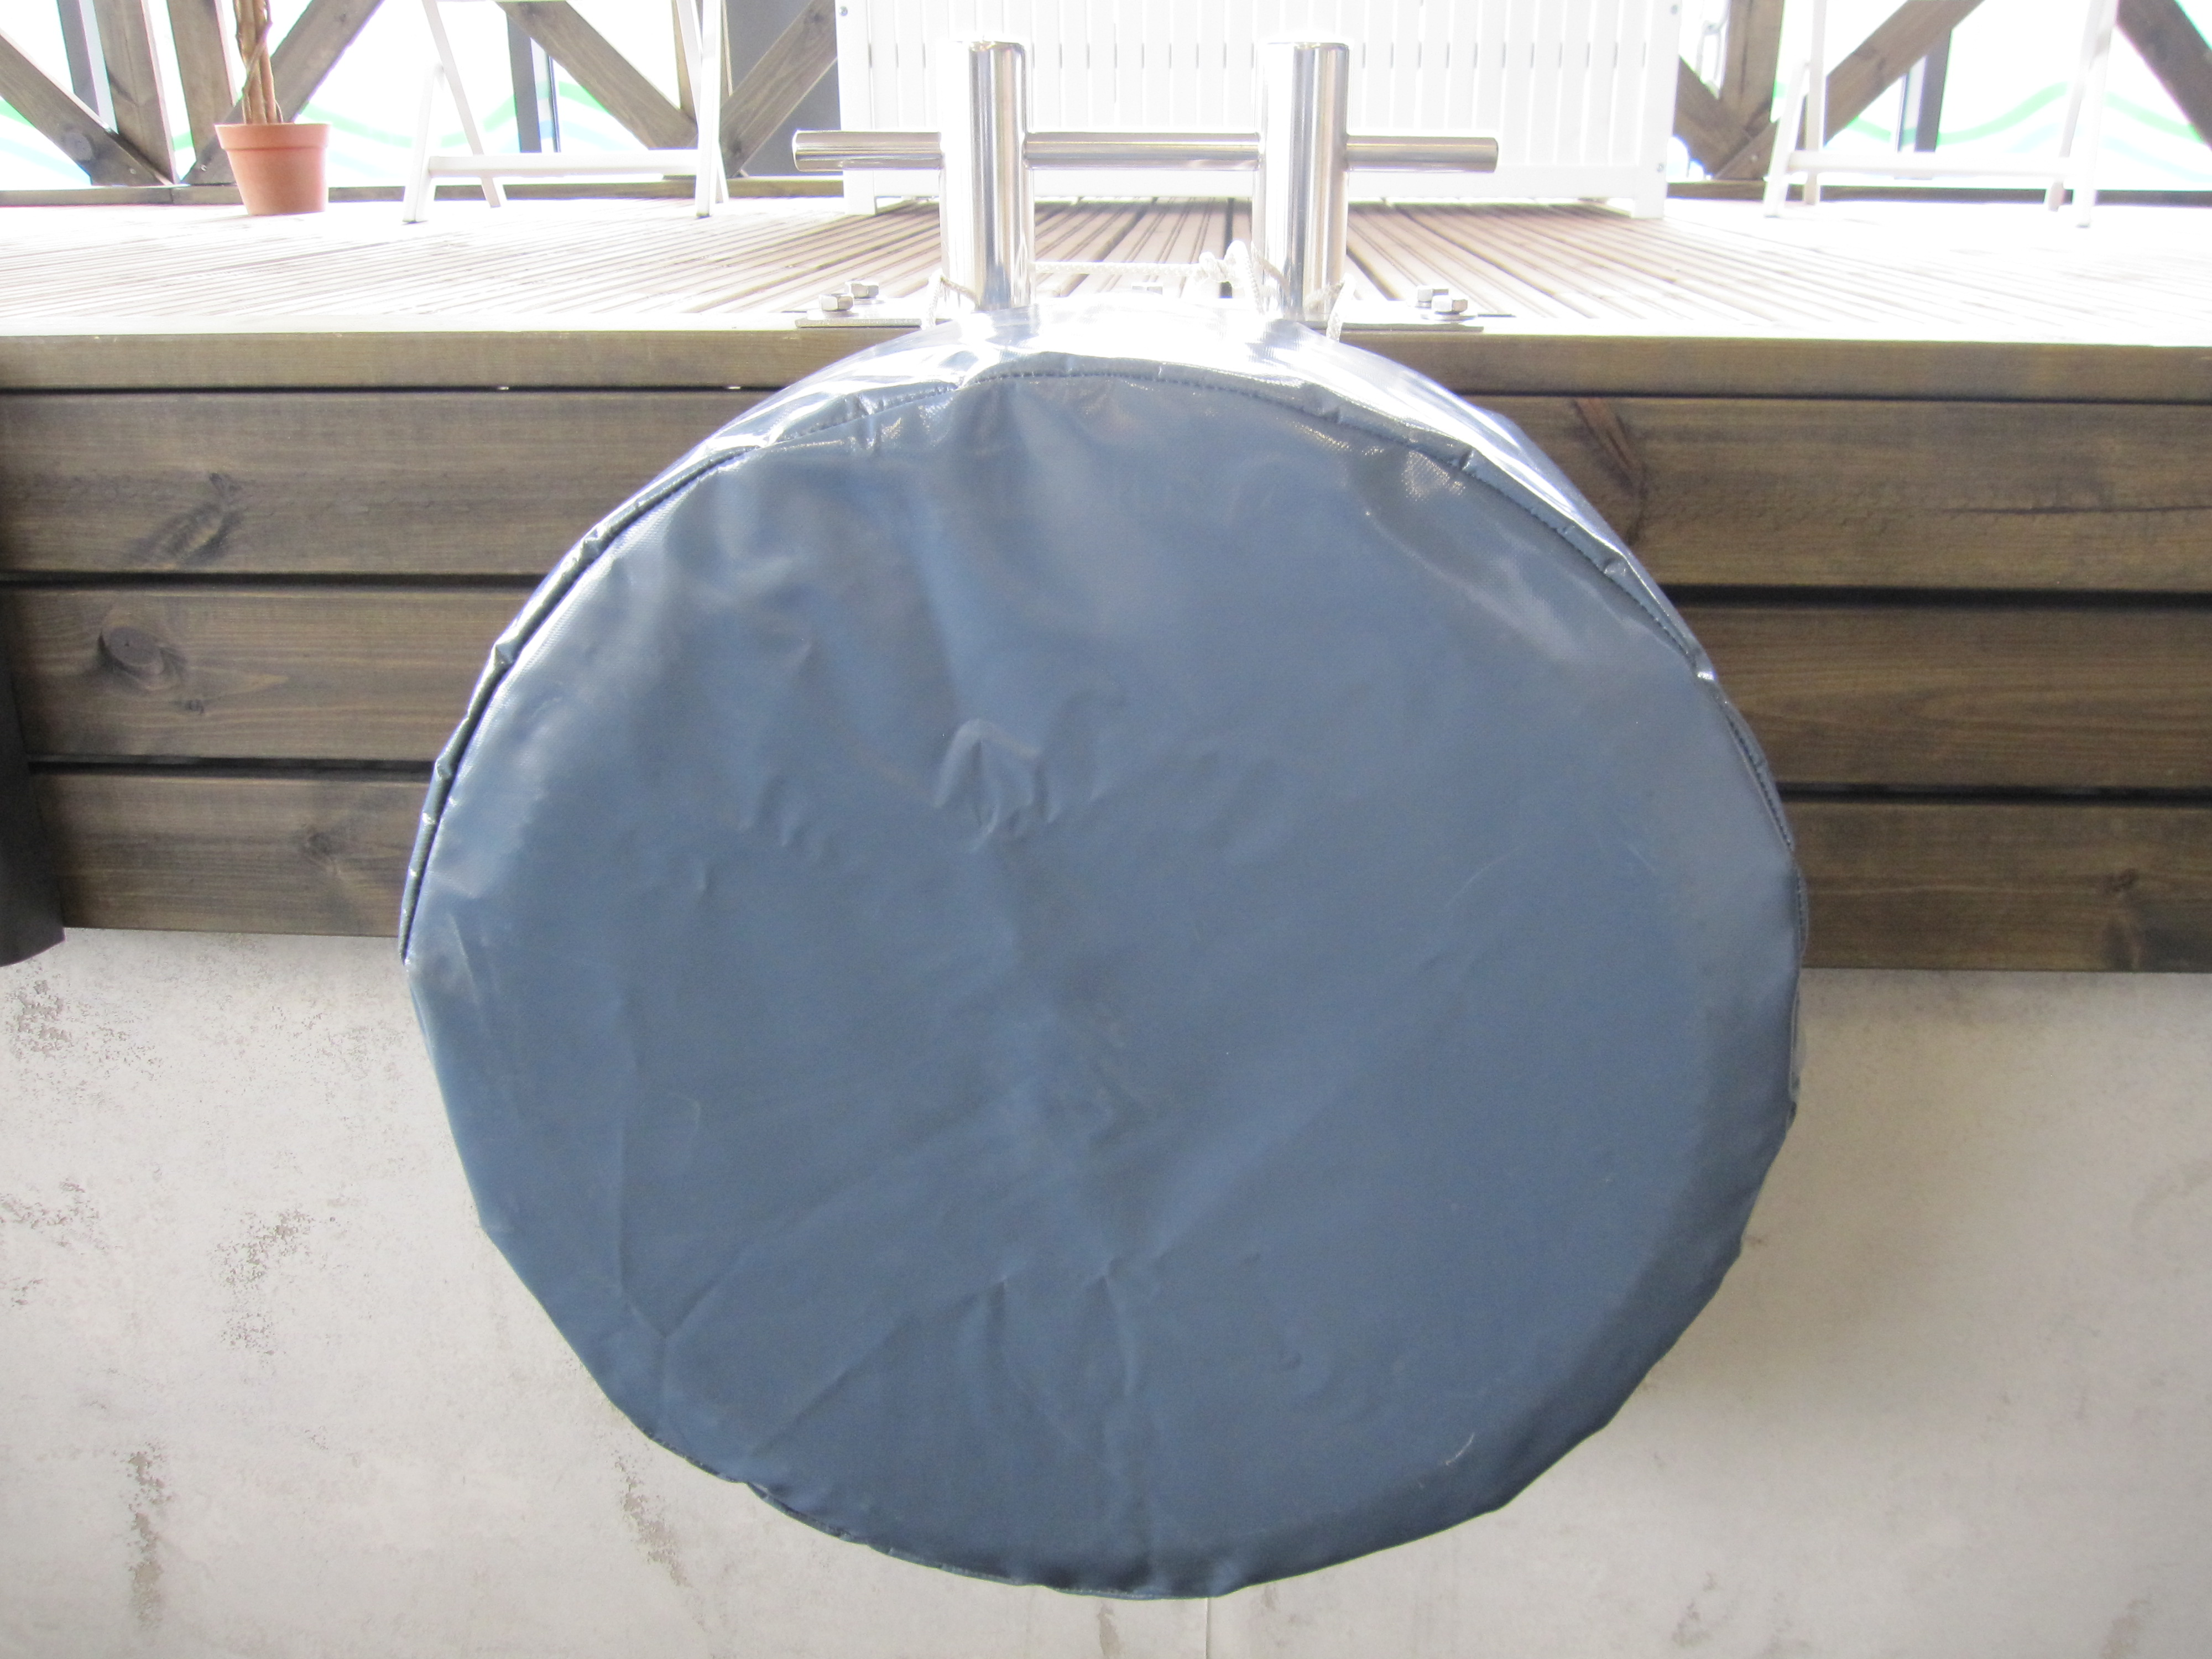 Fender cover for car tire